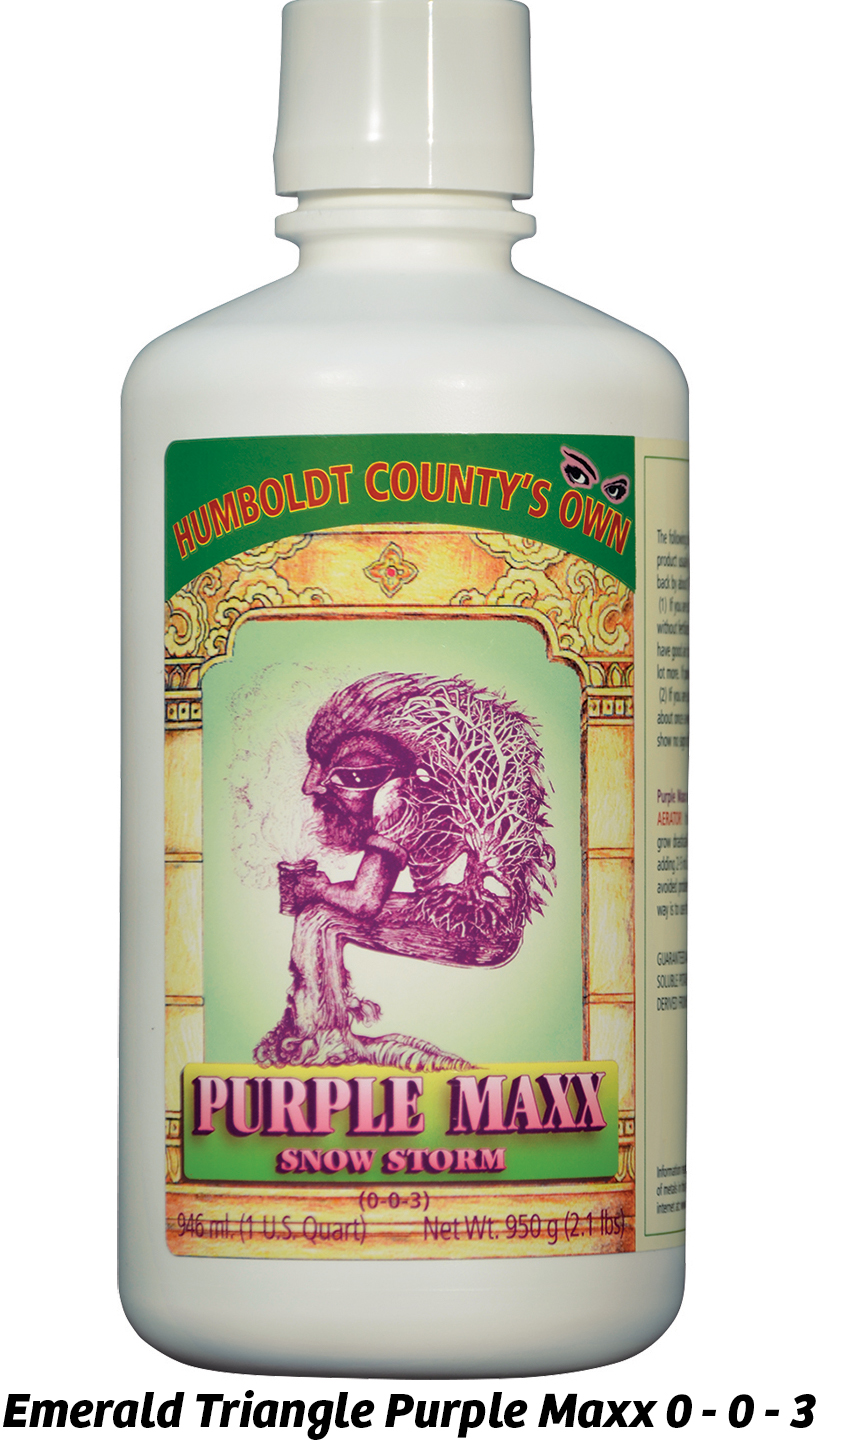 Emerald Triangle Purple Maxx 0 - 0 - 3